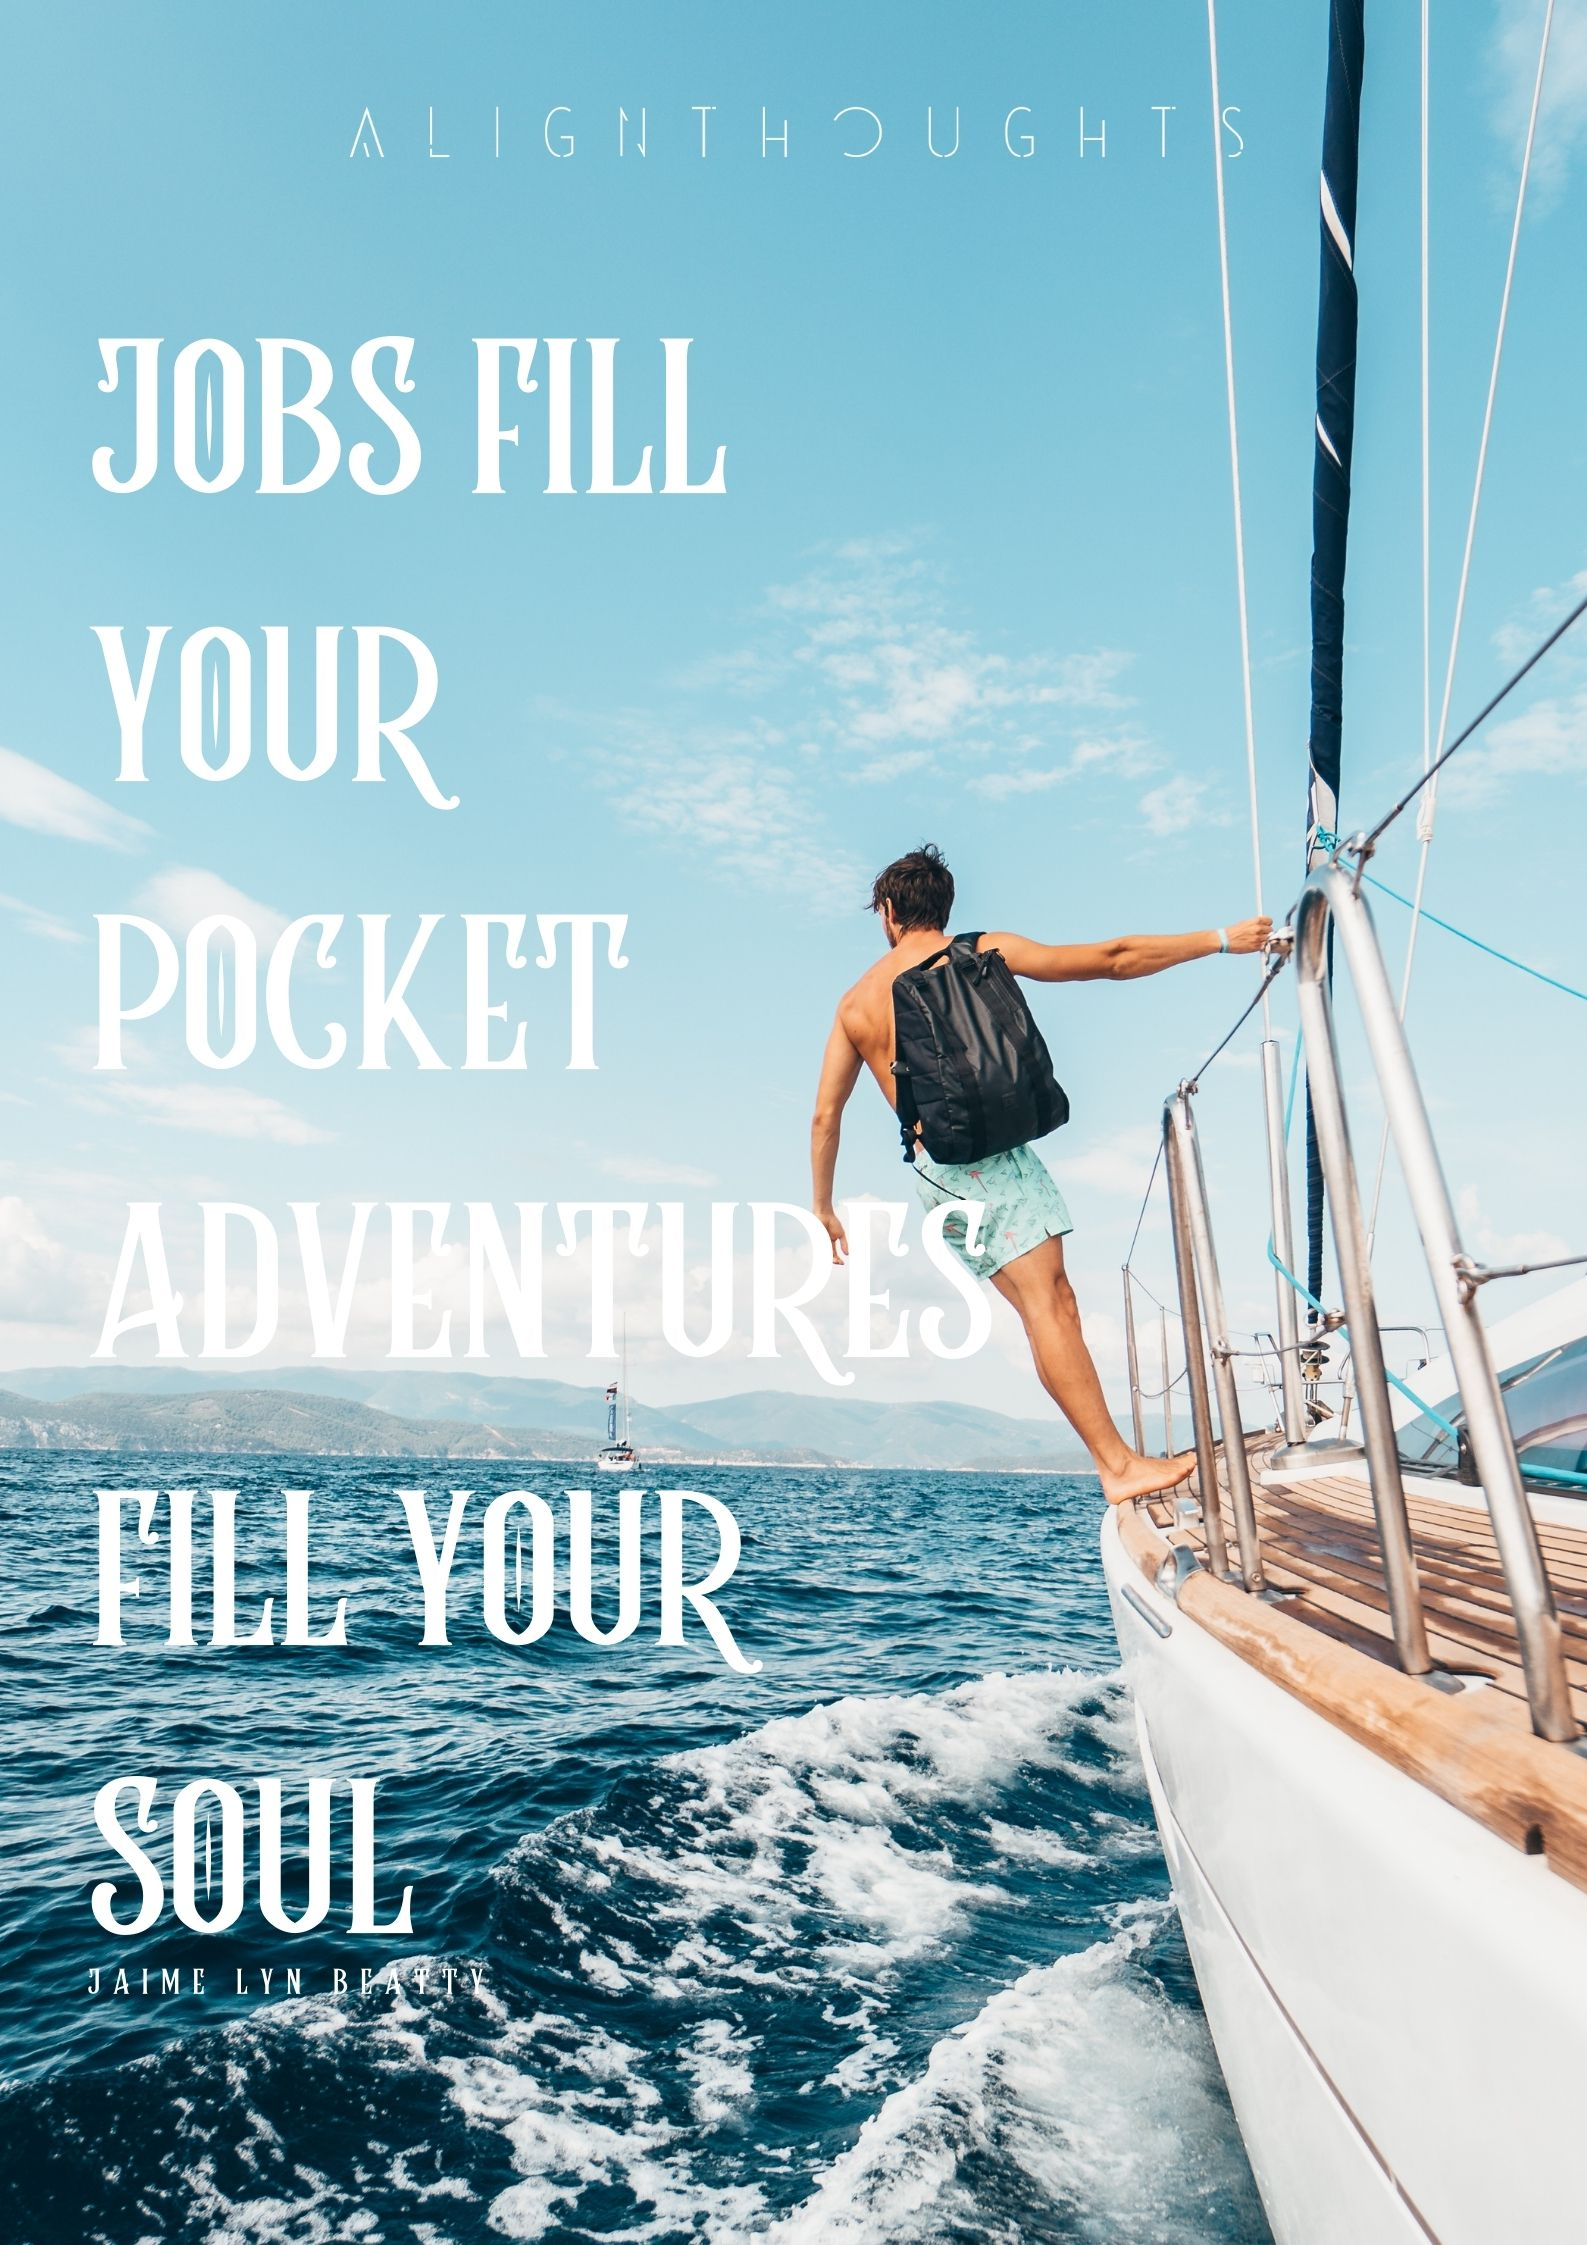 jobs fill your pocket adventures fill your soul quote-alignthoughts